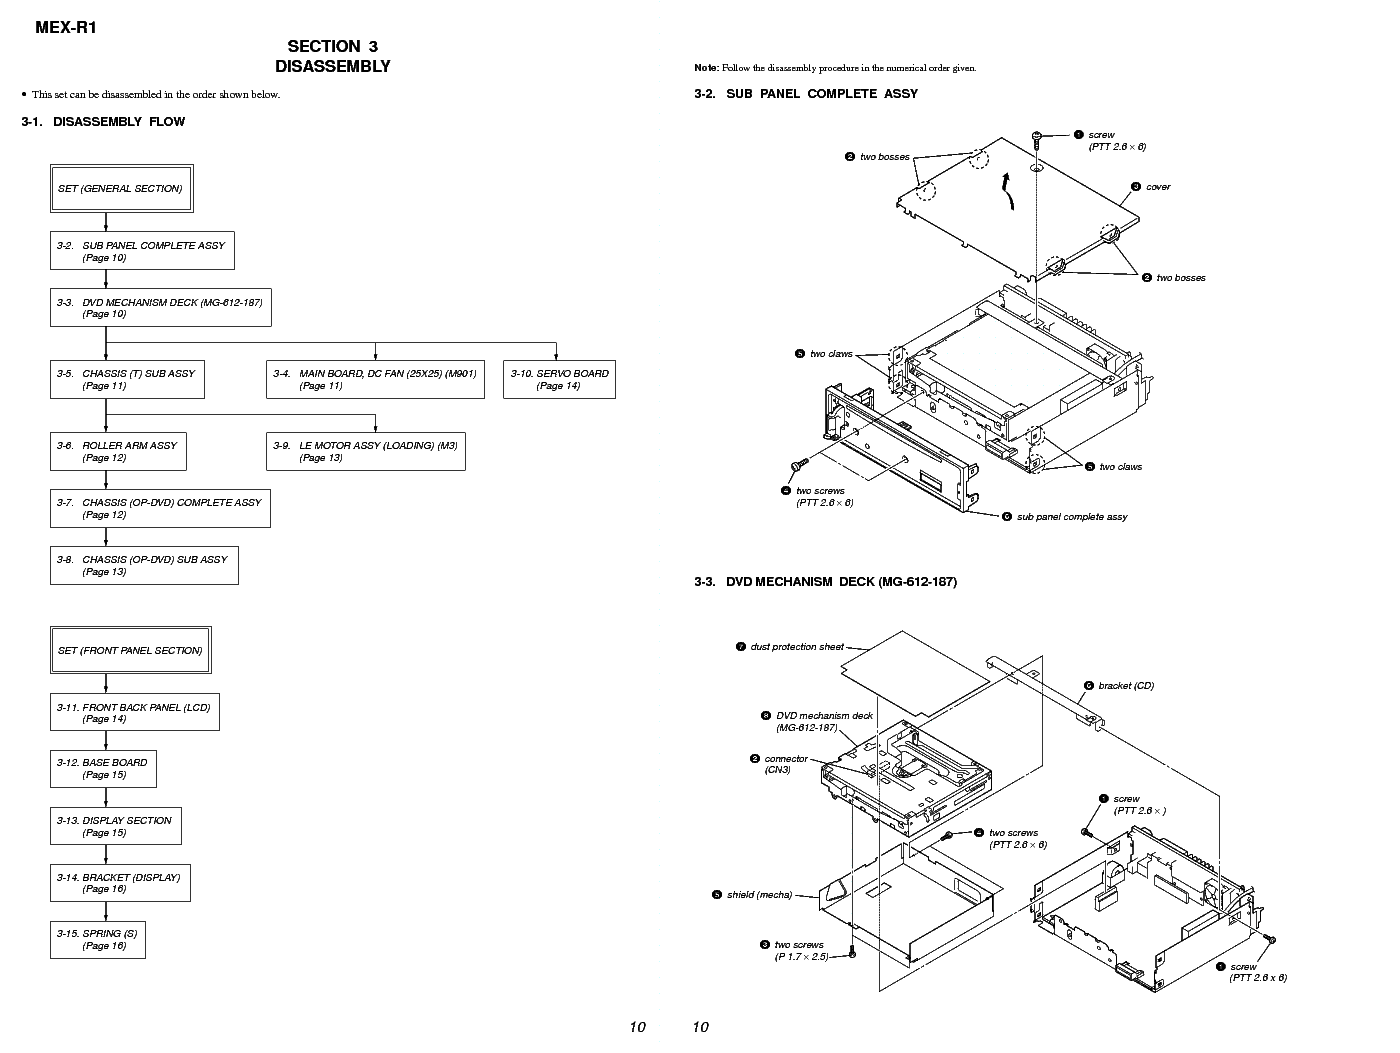 SONY MEX-R1 V1.2 Service Manual download, schematics